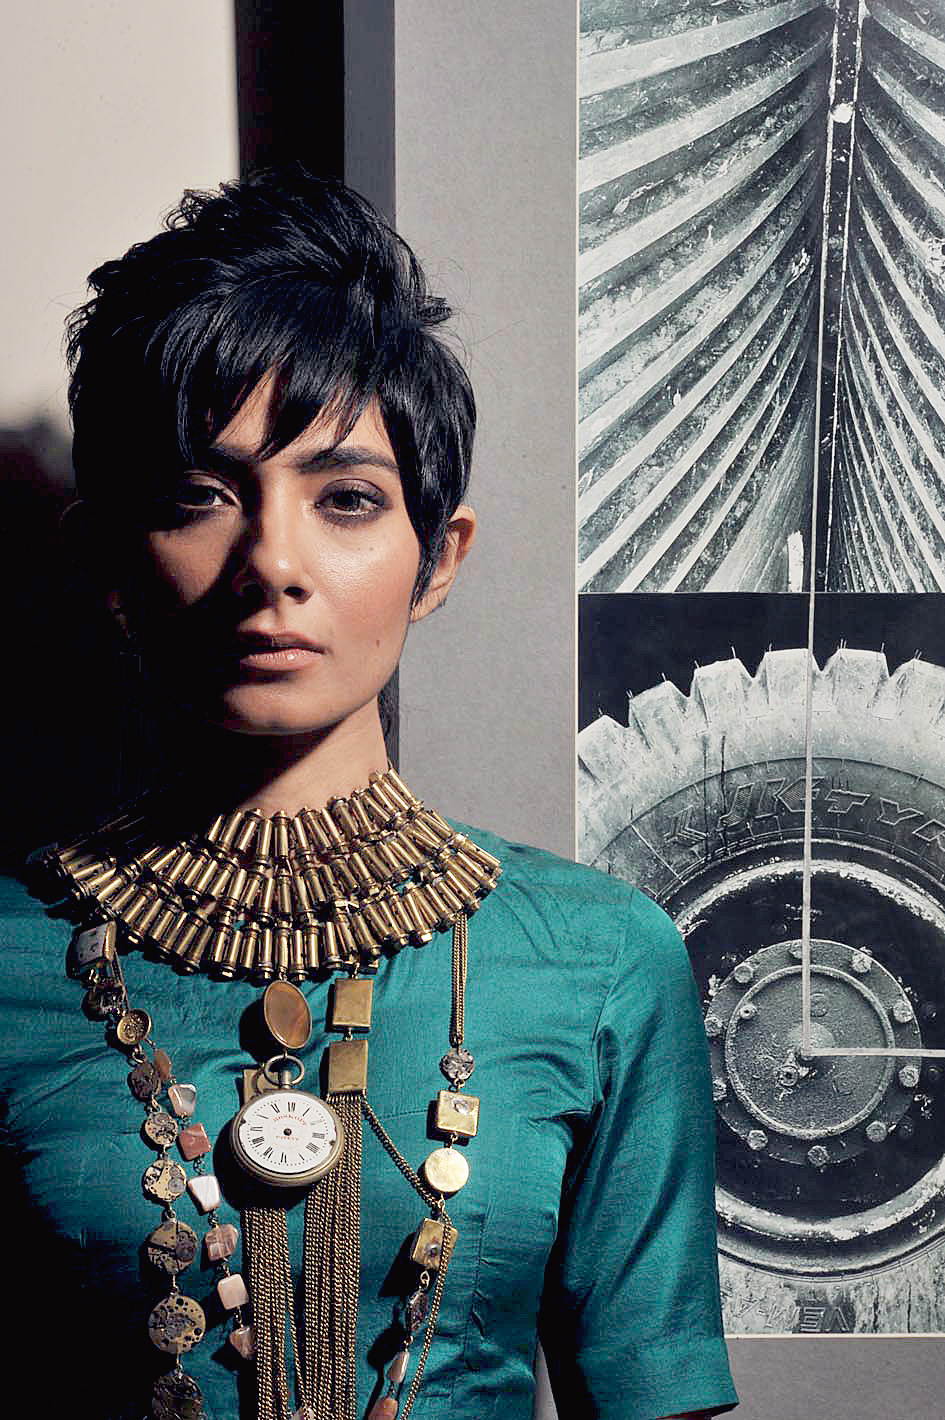 """Narayan had only Sneha in mind for this bold frame. His idea: slip on a solid-coloured blouse and deck it up. """"I have broken the identity of the jewellery here. I have used earrings too on the sap green blouse. Who said you need to wear jewellery like jewellery? You can use it as a button too. I think it is important to break boundaries,"""" said Narayan as he slipped on five or six brass and stone neckpieces on Sneha. Add three to four earrings to that mix. The result? A dramatic evening look"""